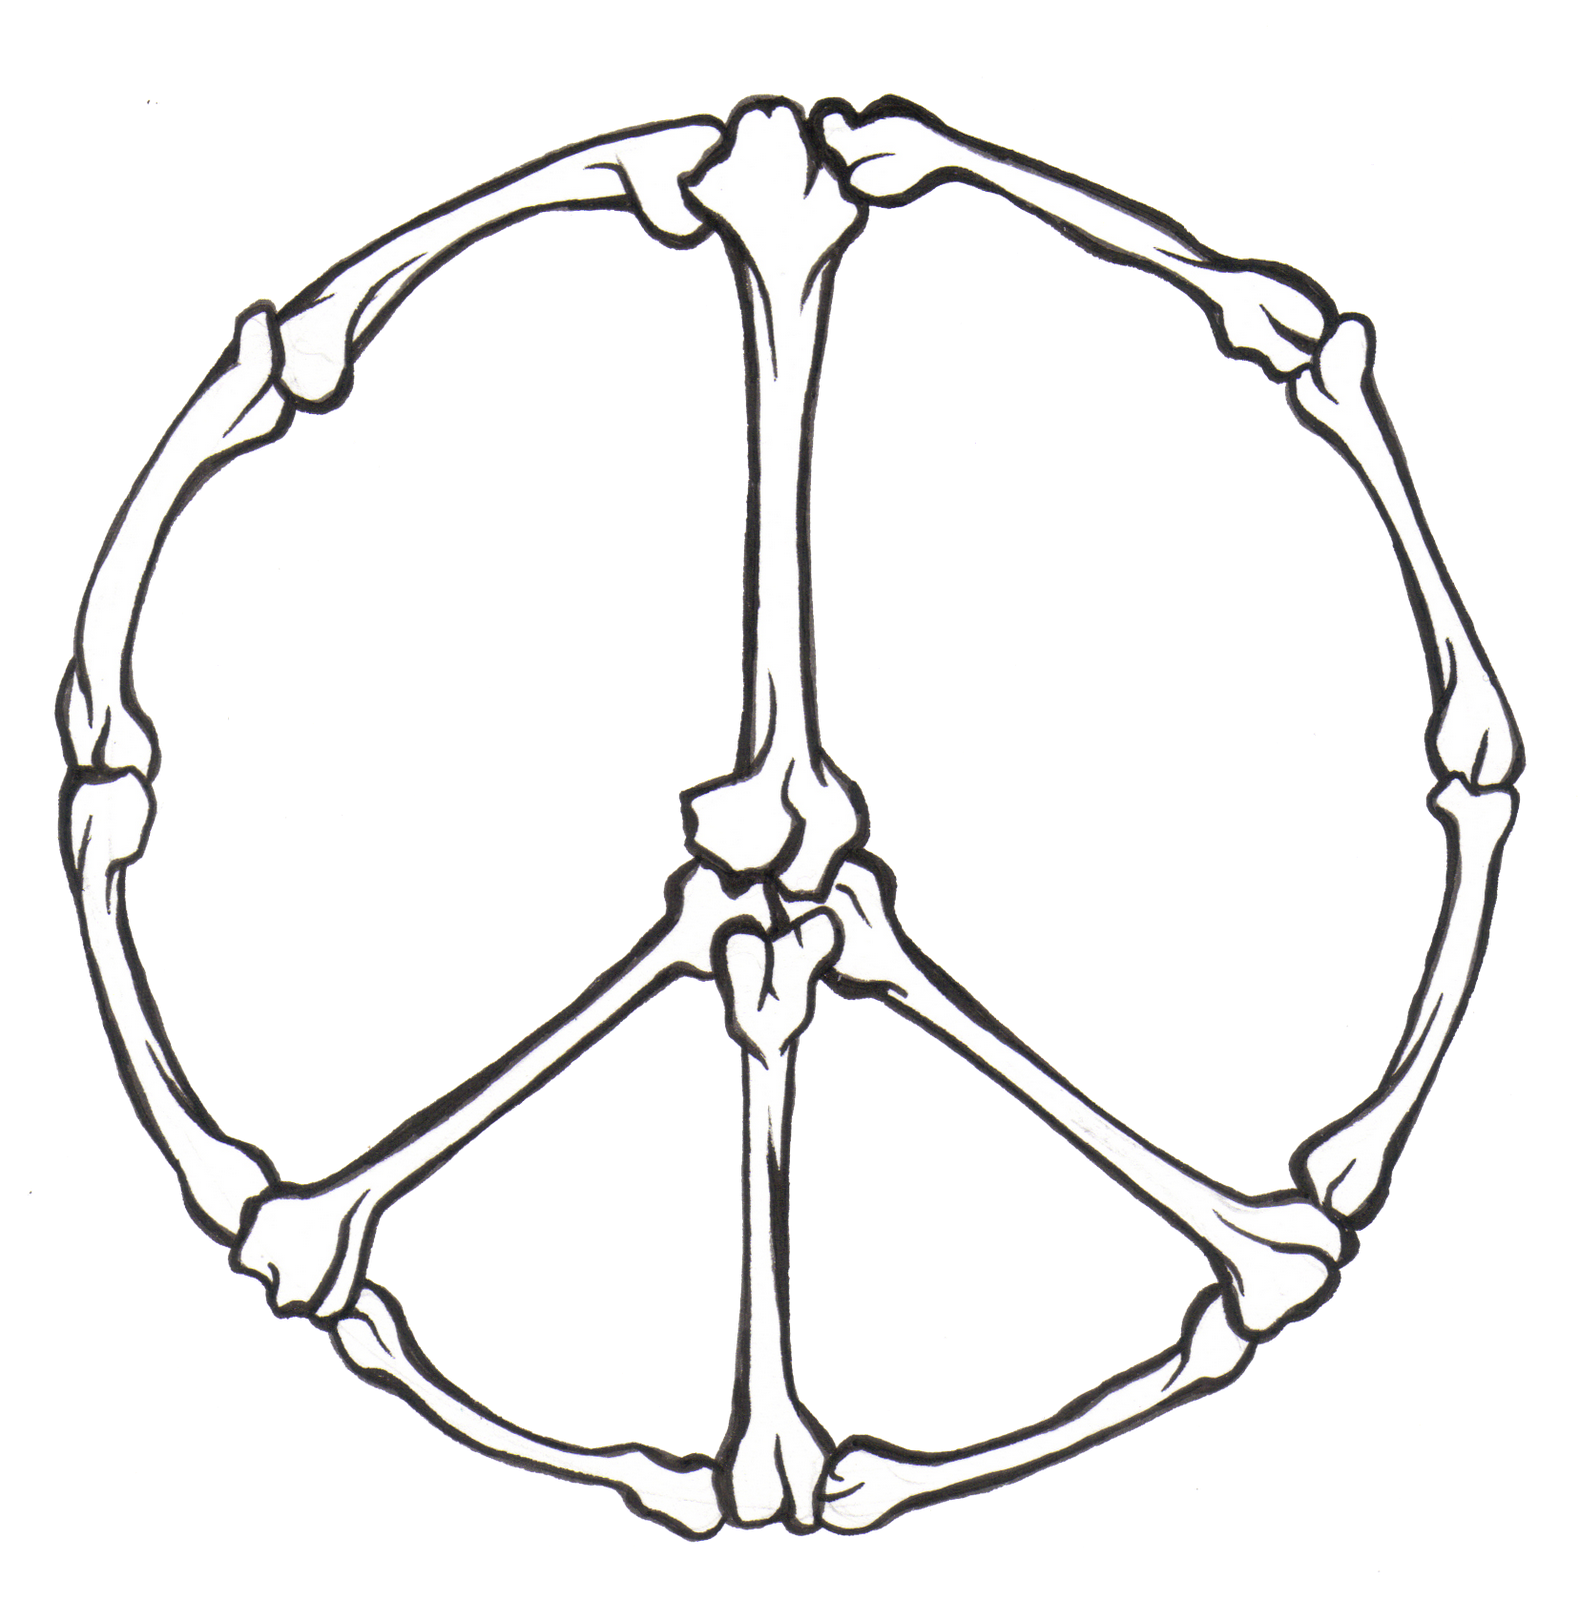 peacesign coloring pages - photo#33